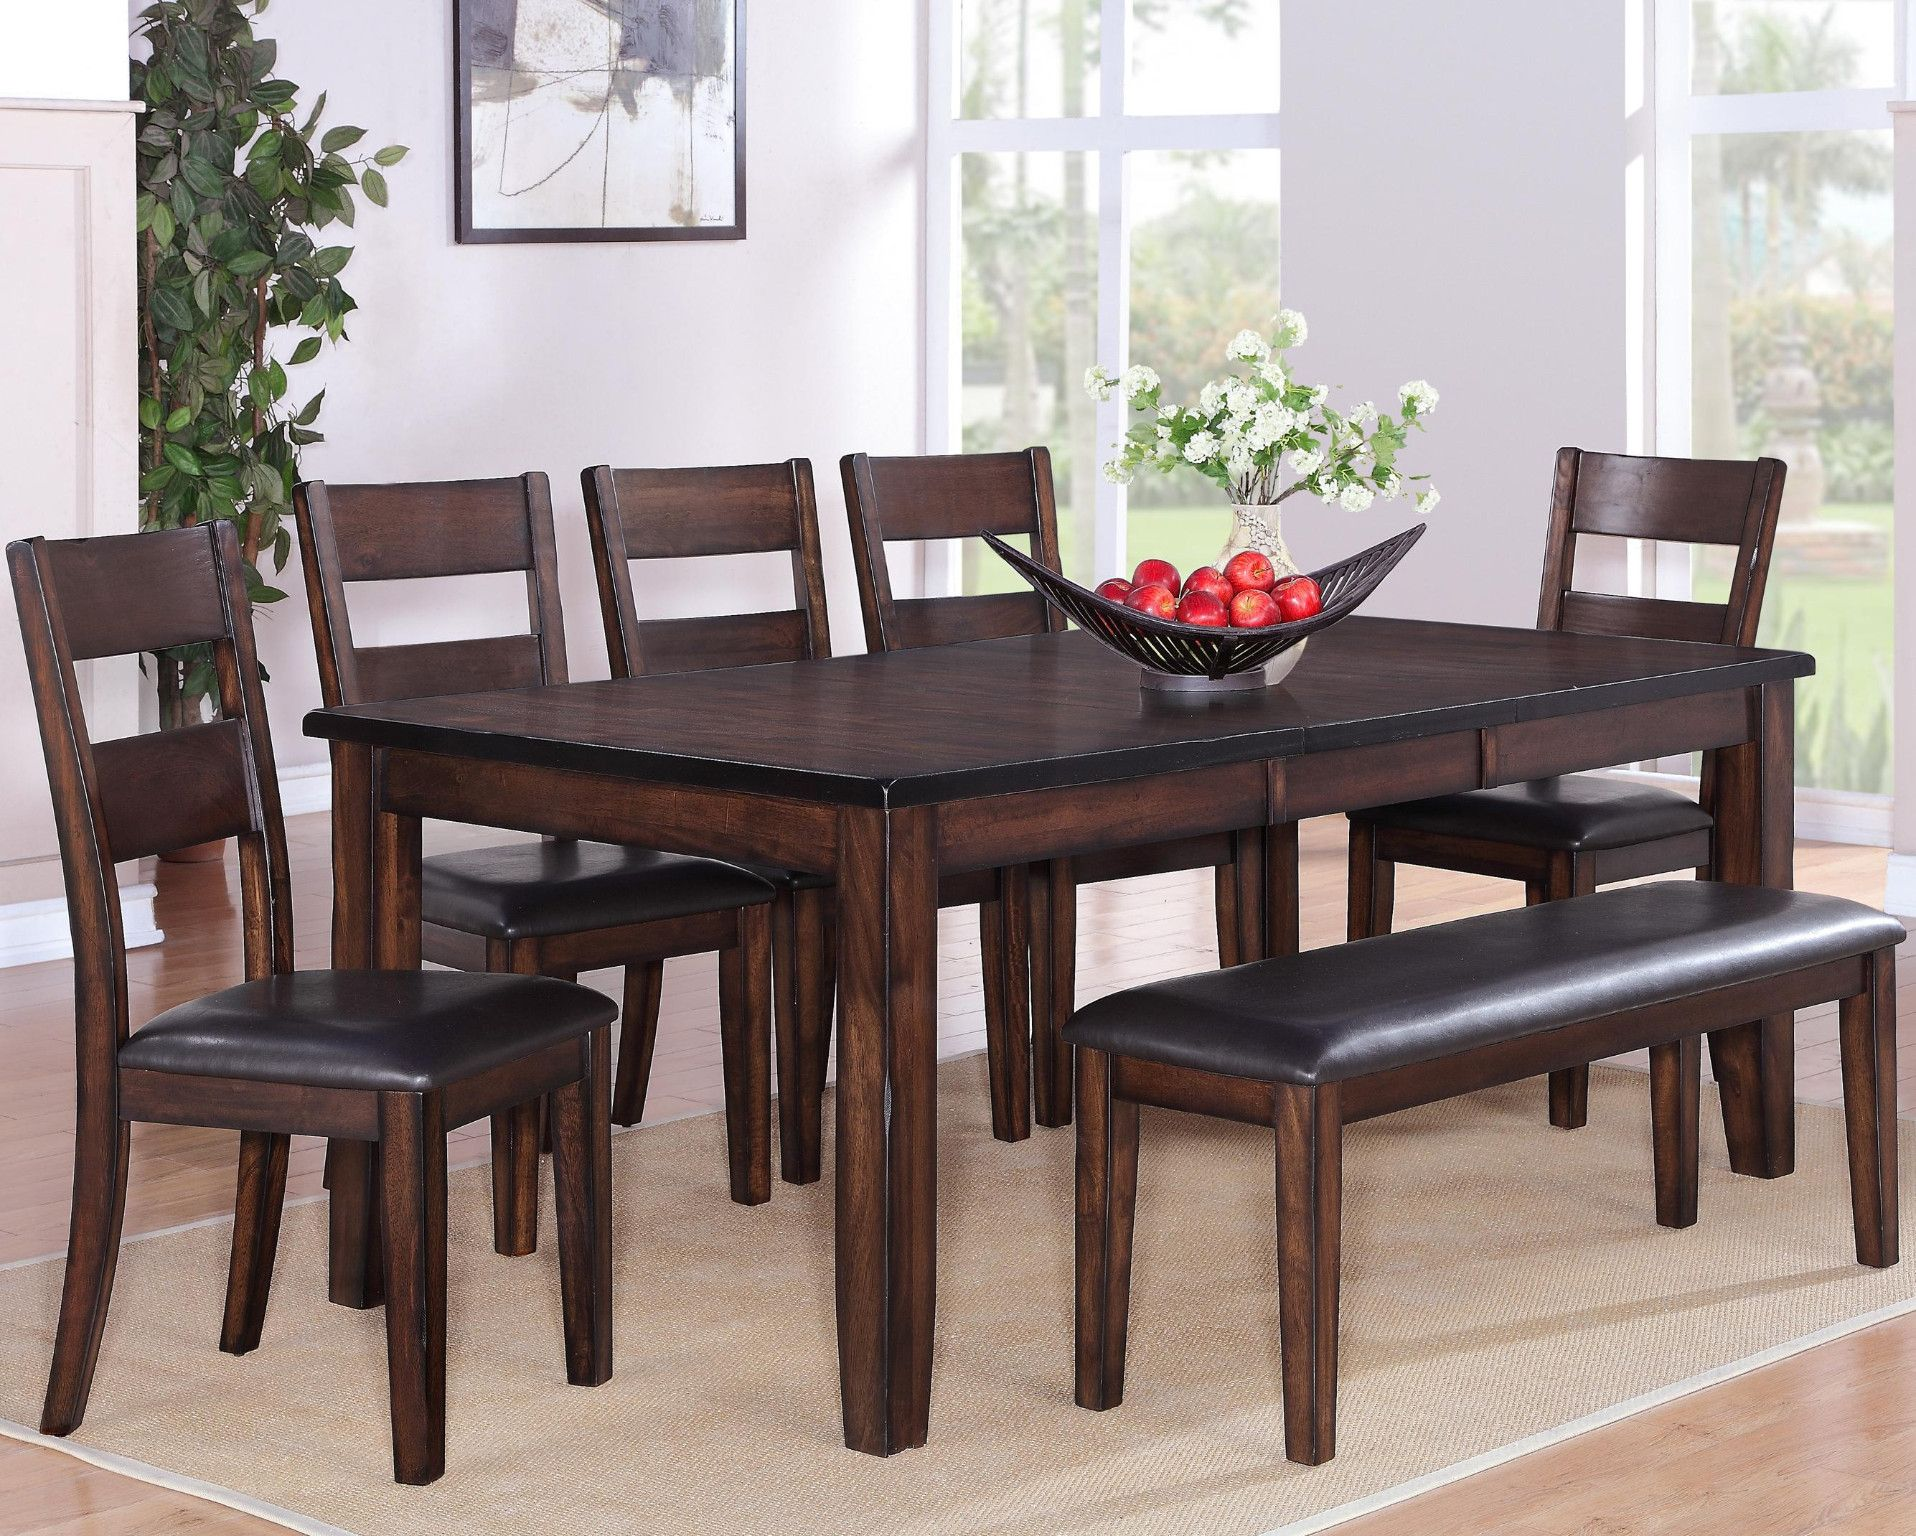 Maldives 5 Piece Dinette Table And 4 Chairs 69900 45900 42